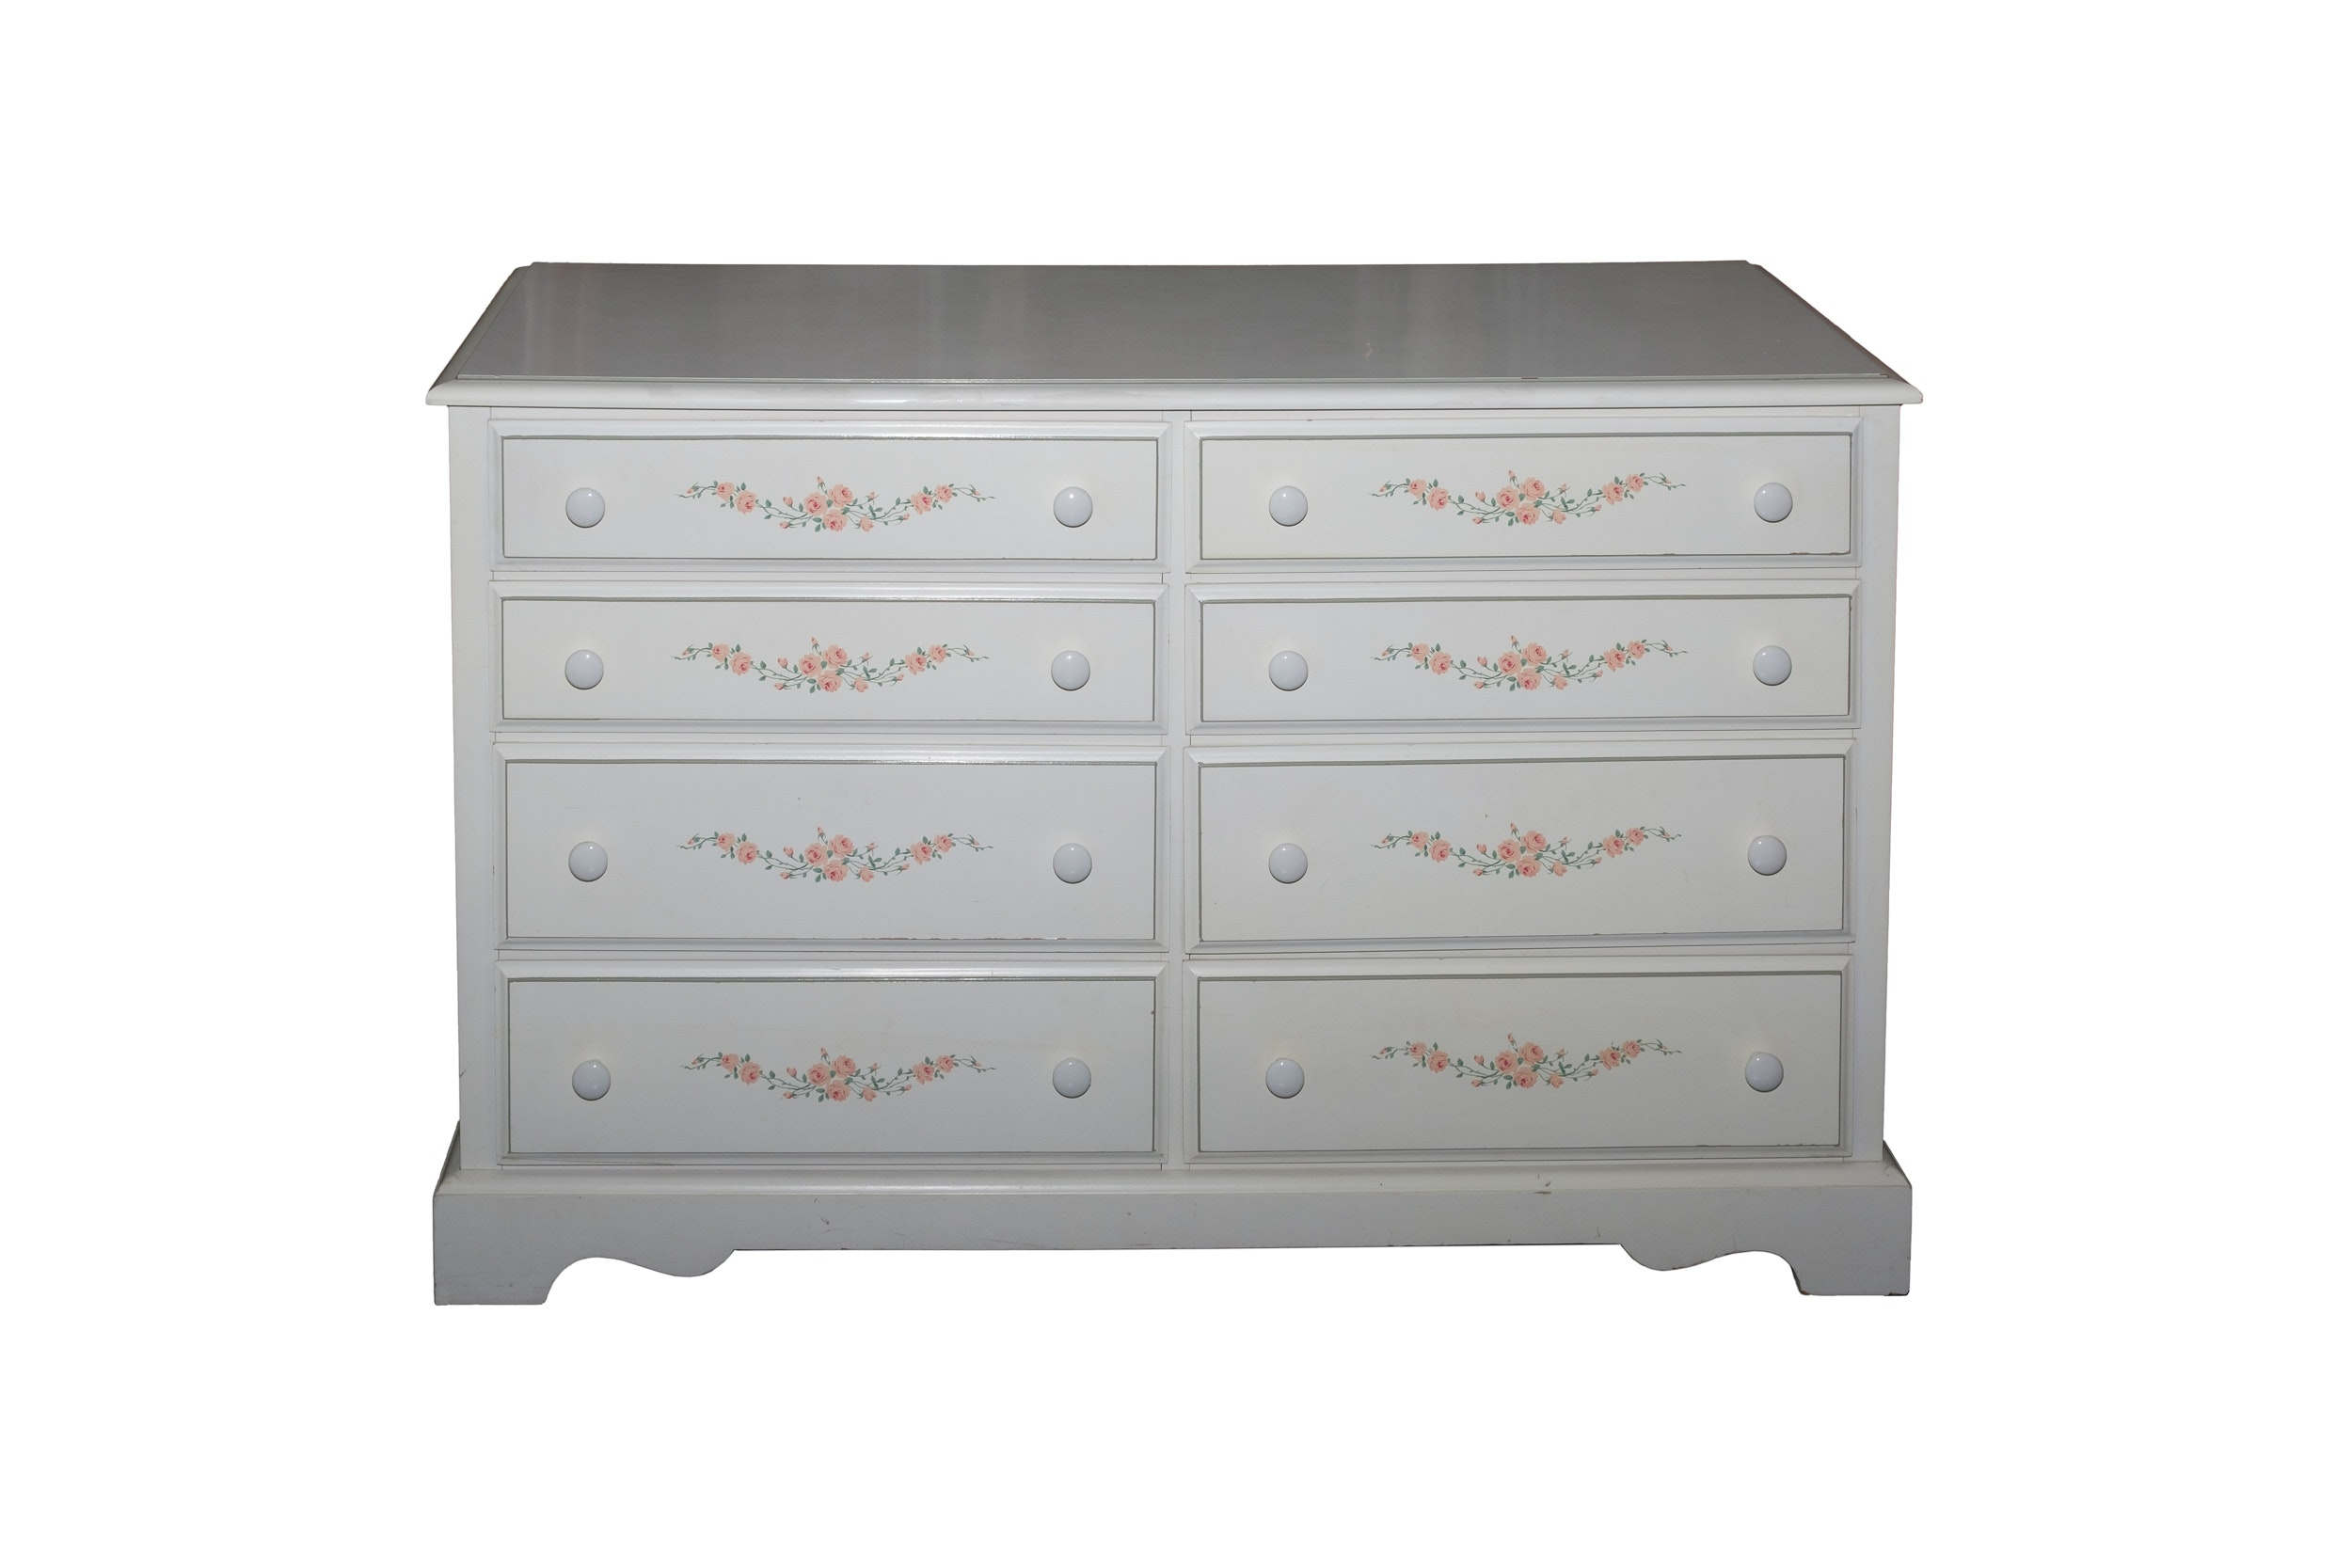 Painted Chest of Drawers with Flowers